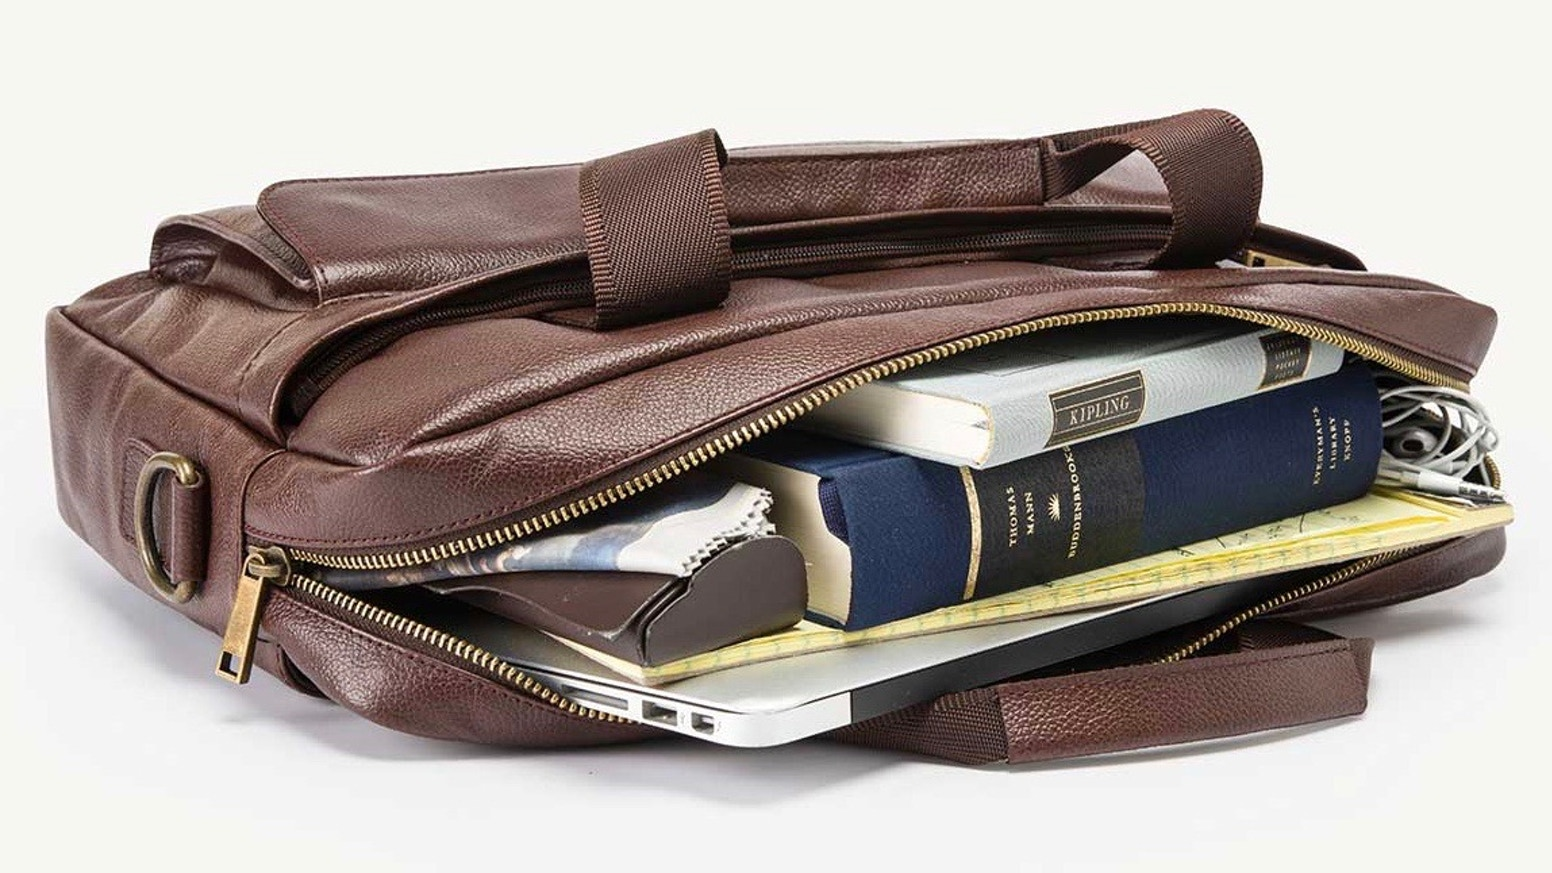 An awesome, highly functional, well-designed leather briefcase, at a great price.